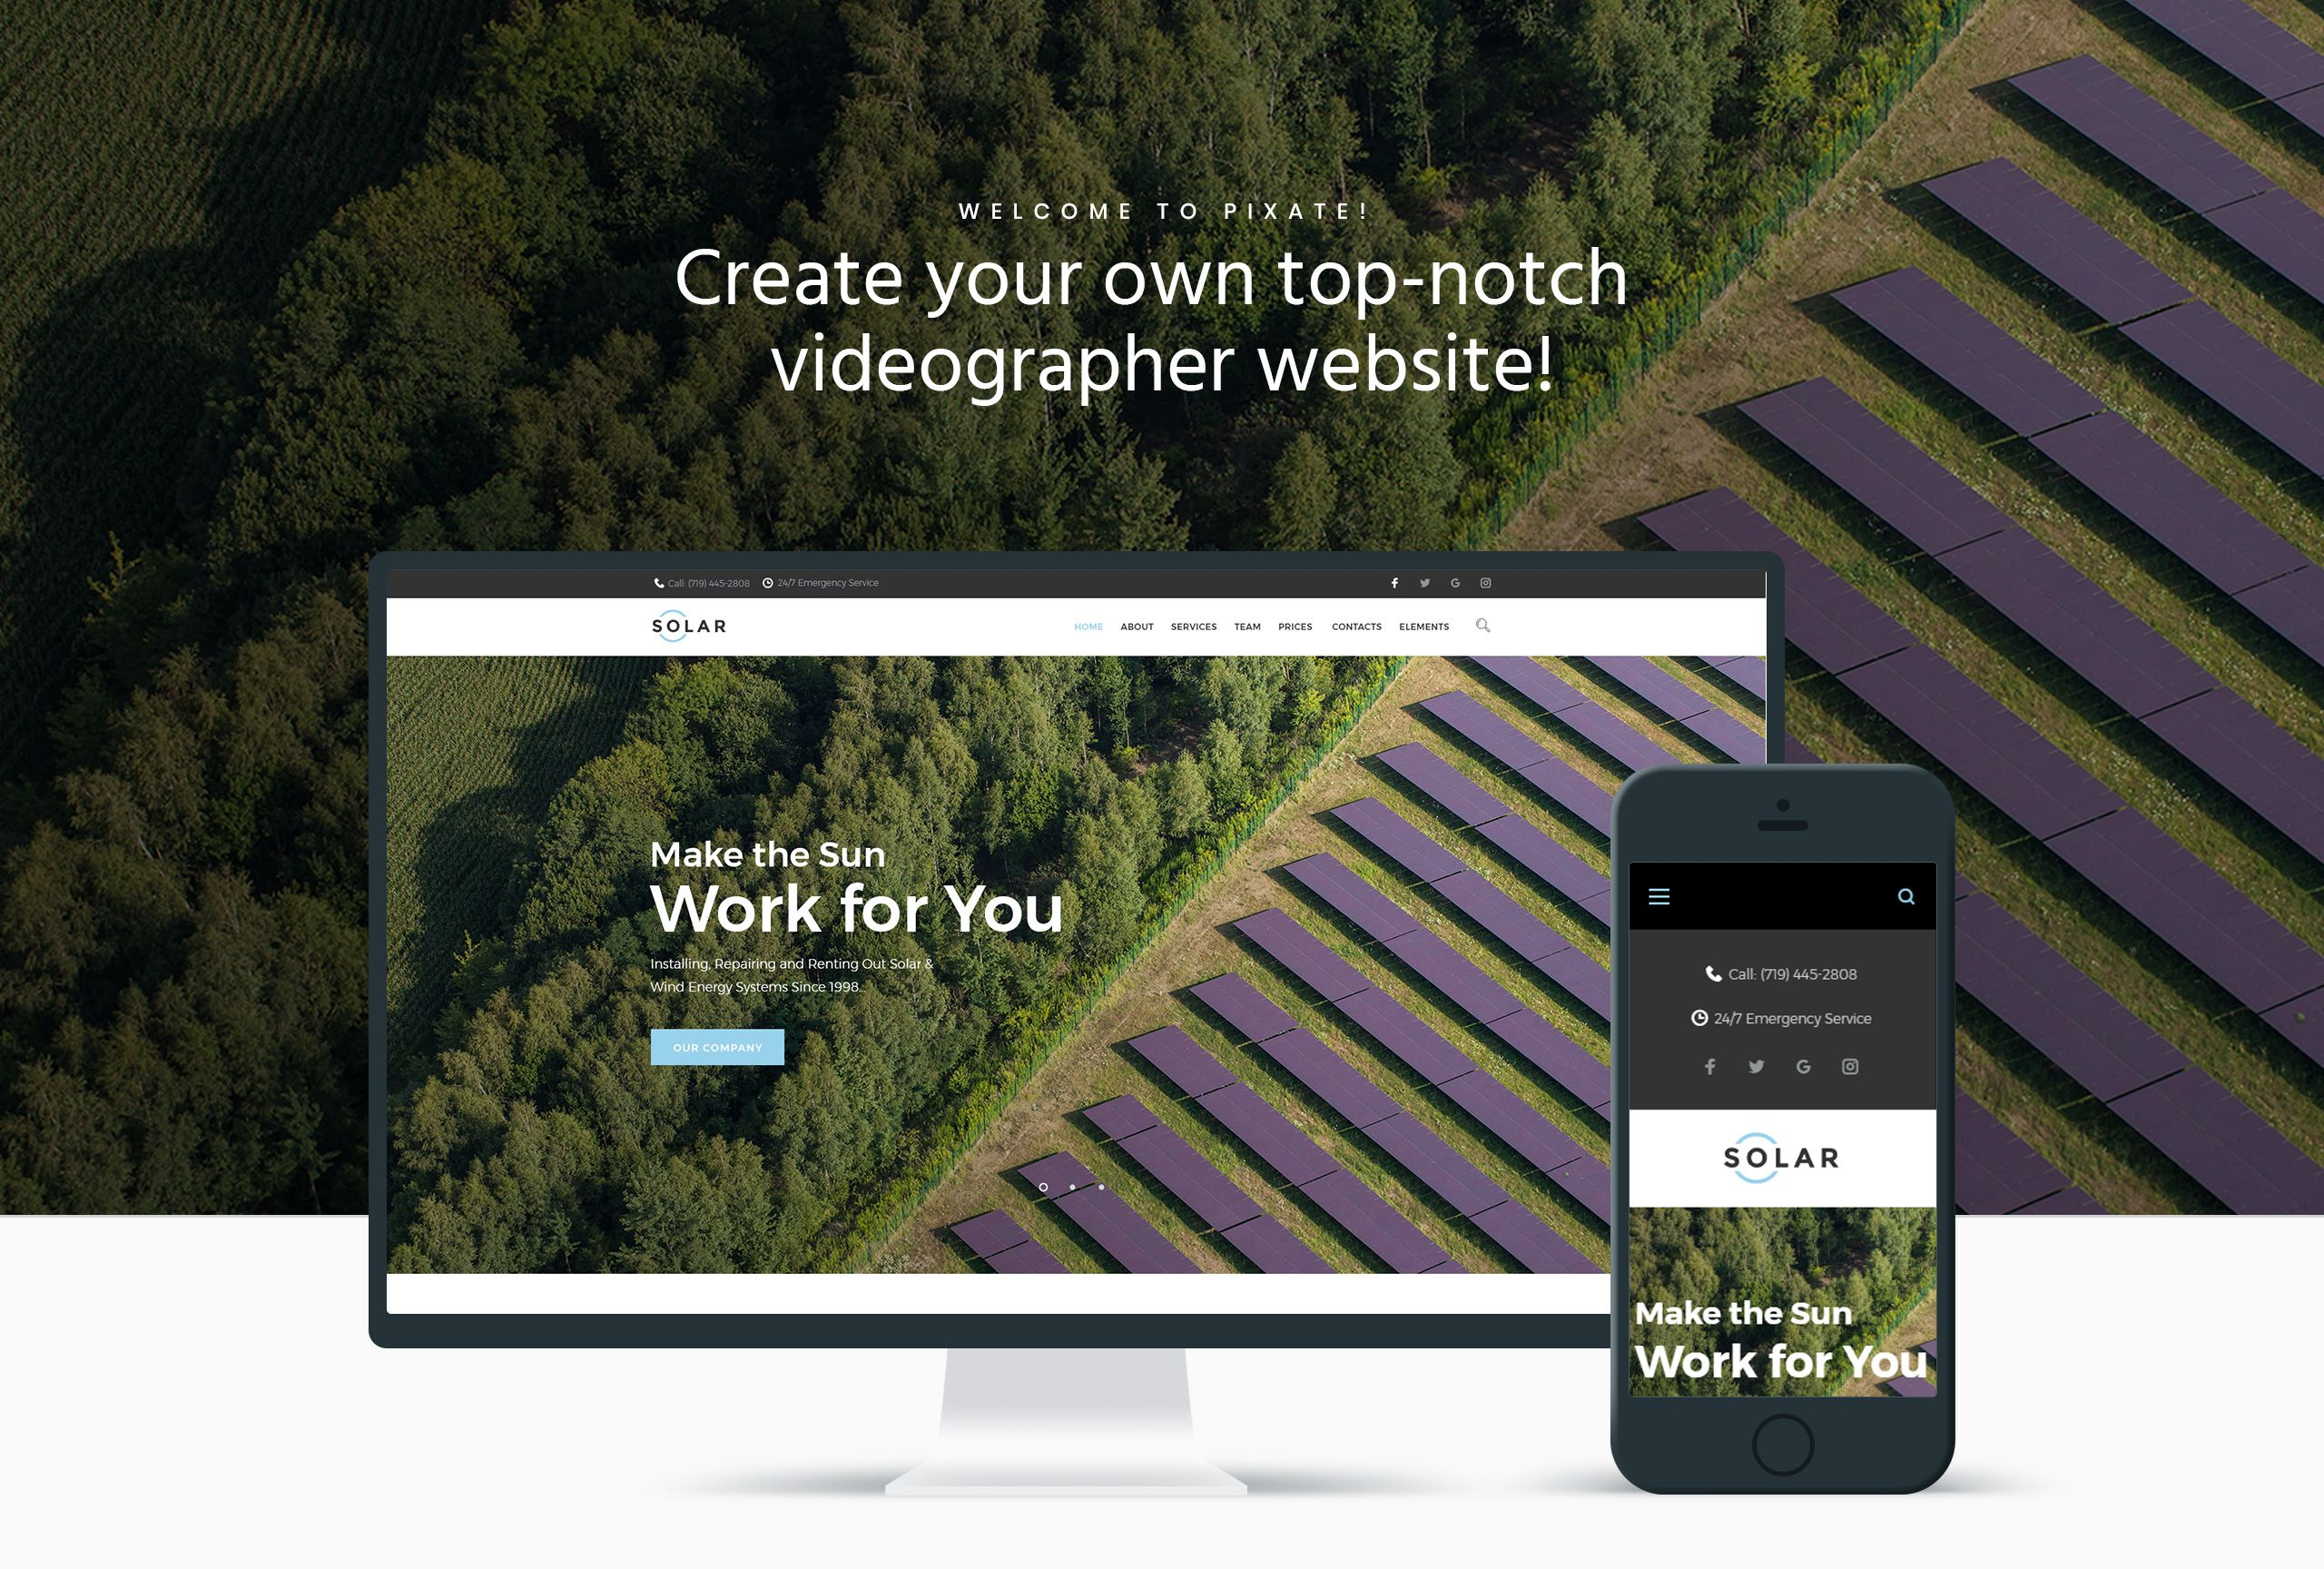 Solar - Alternative Energy Company WordPress Theme WordPress Theme #65623, #Ad #Energy #Company #Solar #Alternative #alternativeenergy